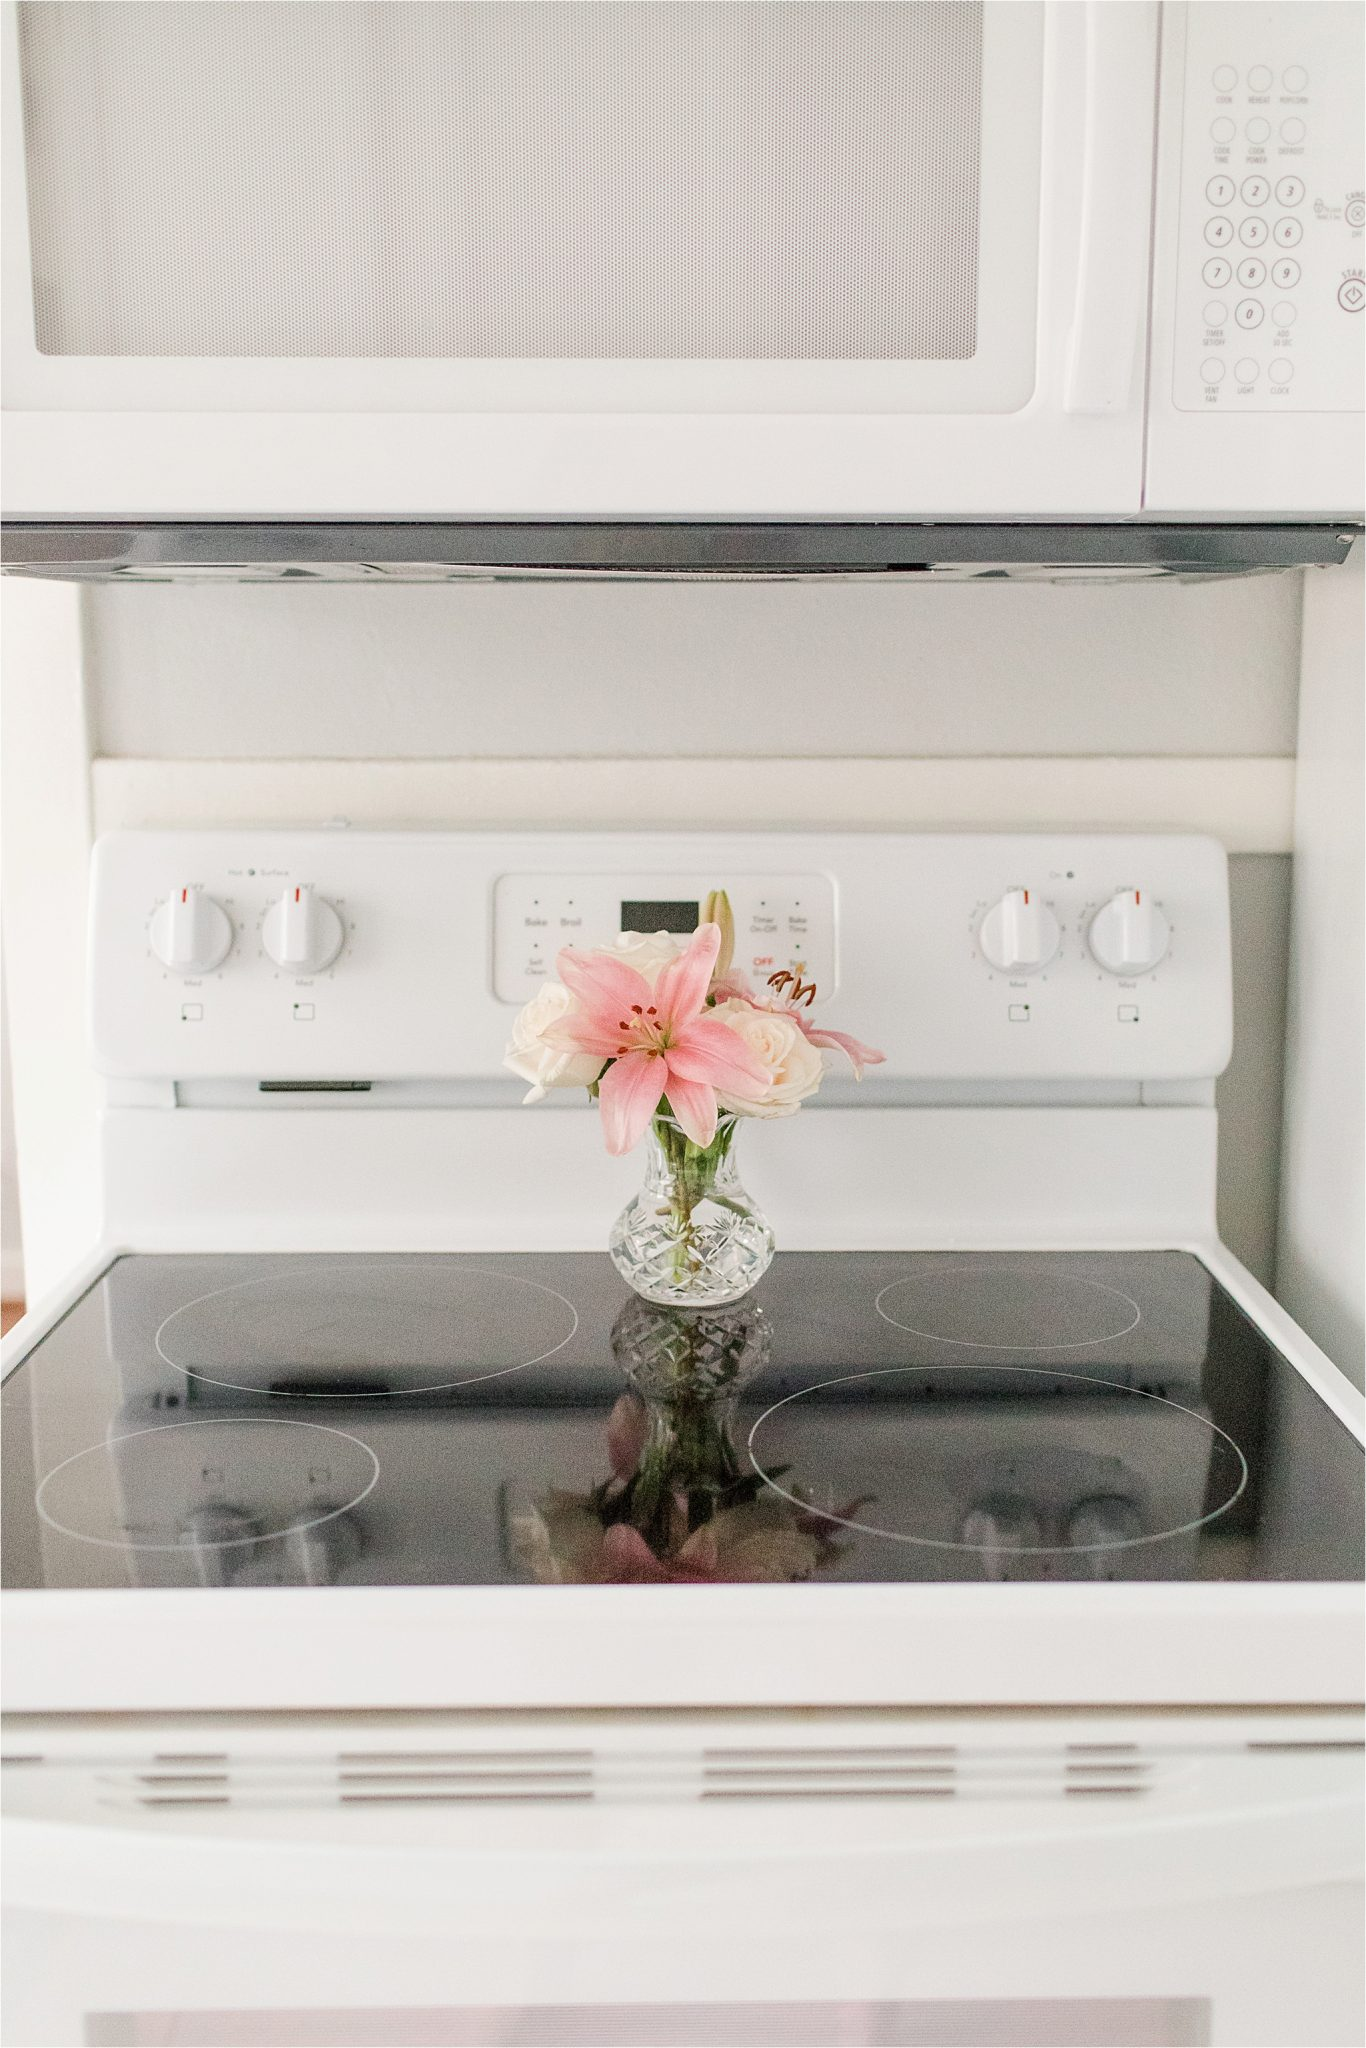 kitchen-decorating-decor-white-fresh-flowers-oven-microwave